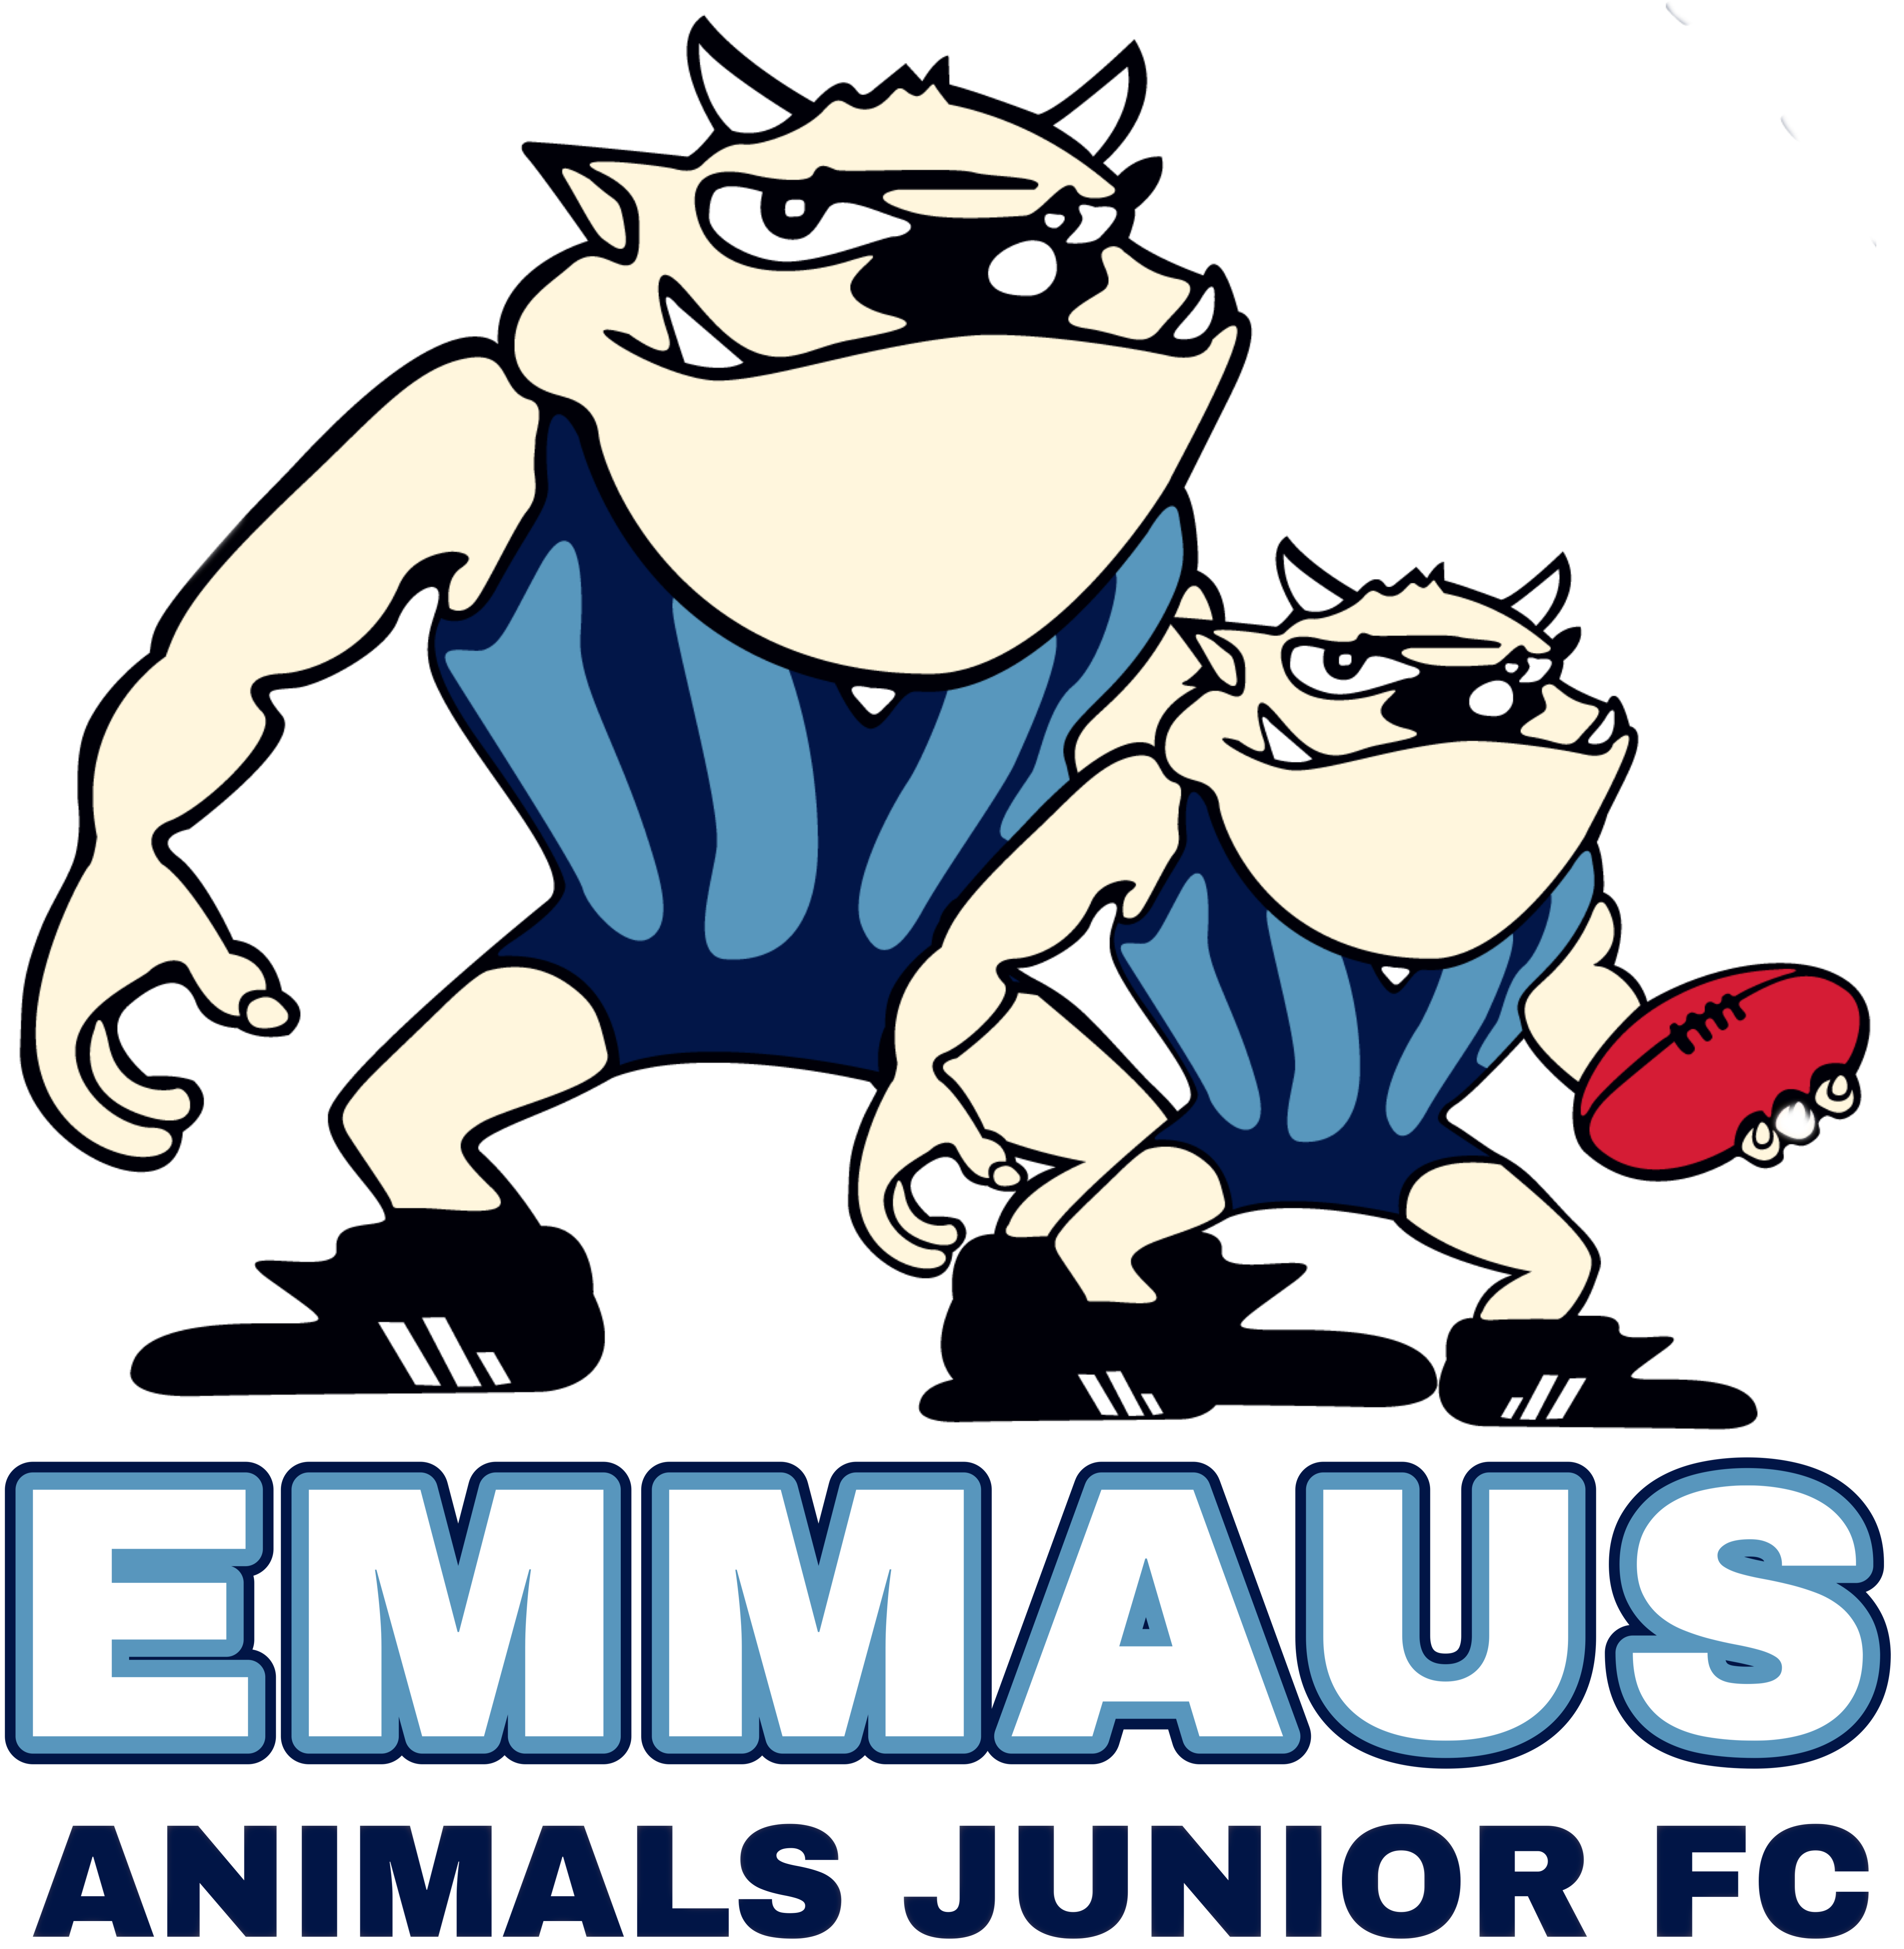 Animals playing football clipart clipart free stock Saturday Footy League - Emmaus Animals clipart free stock